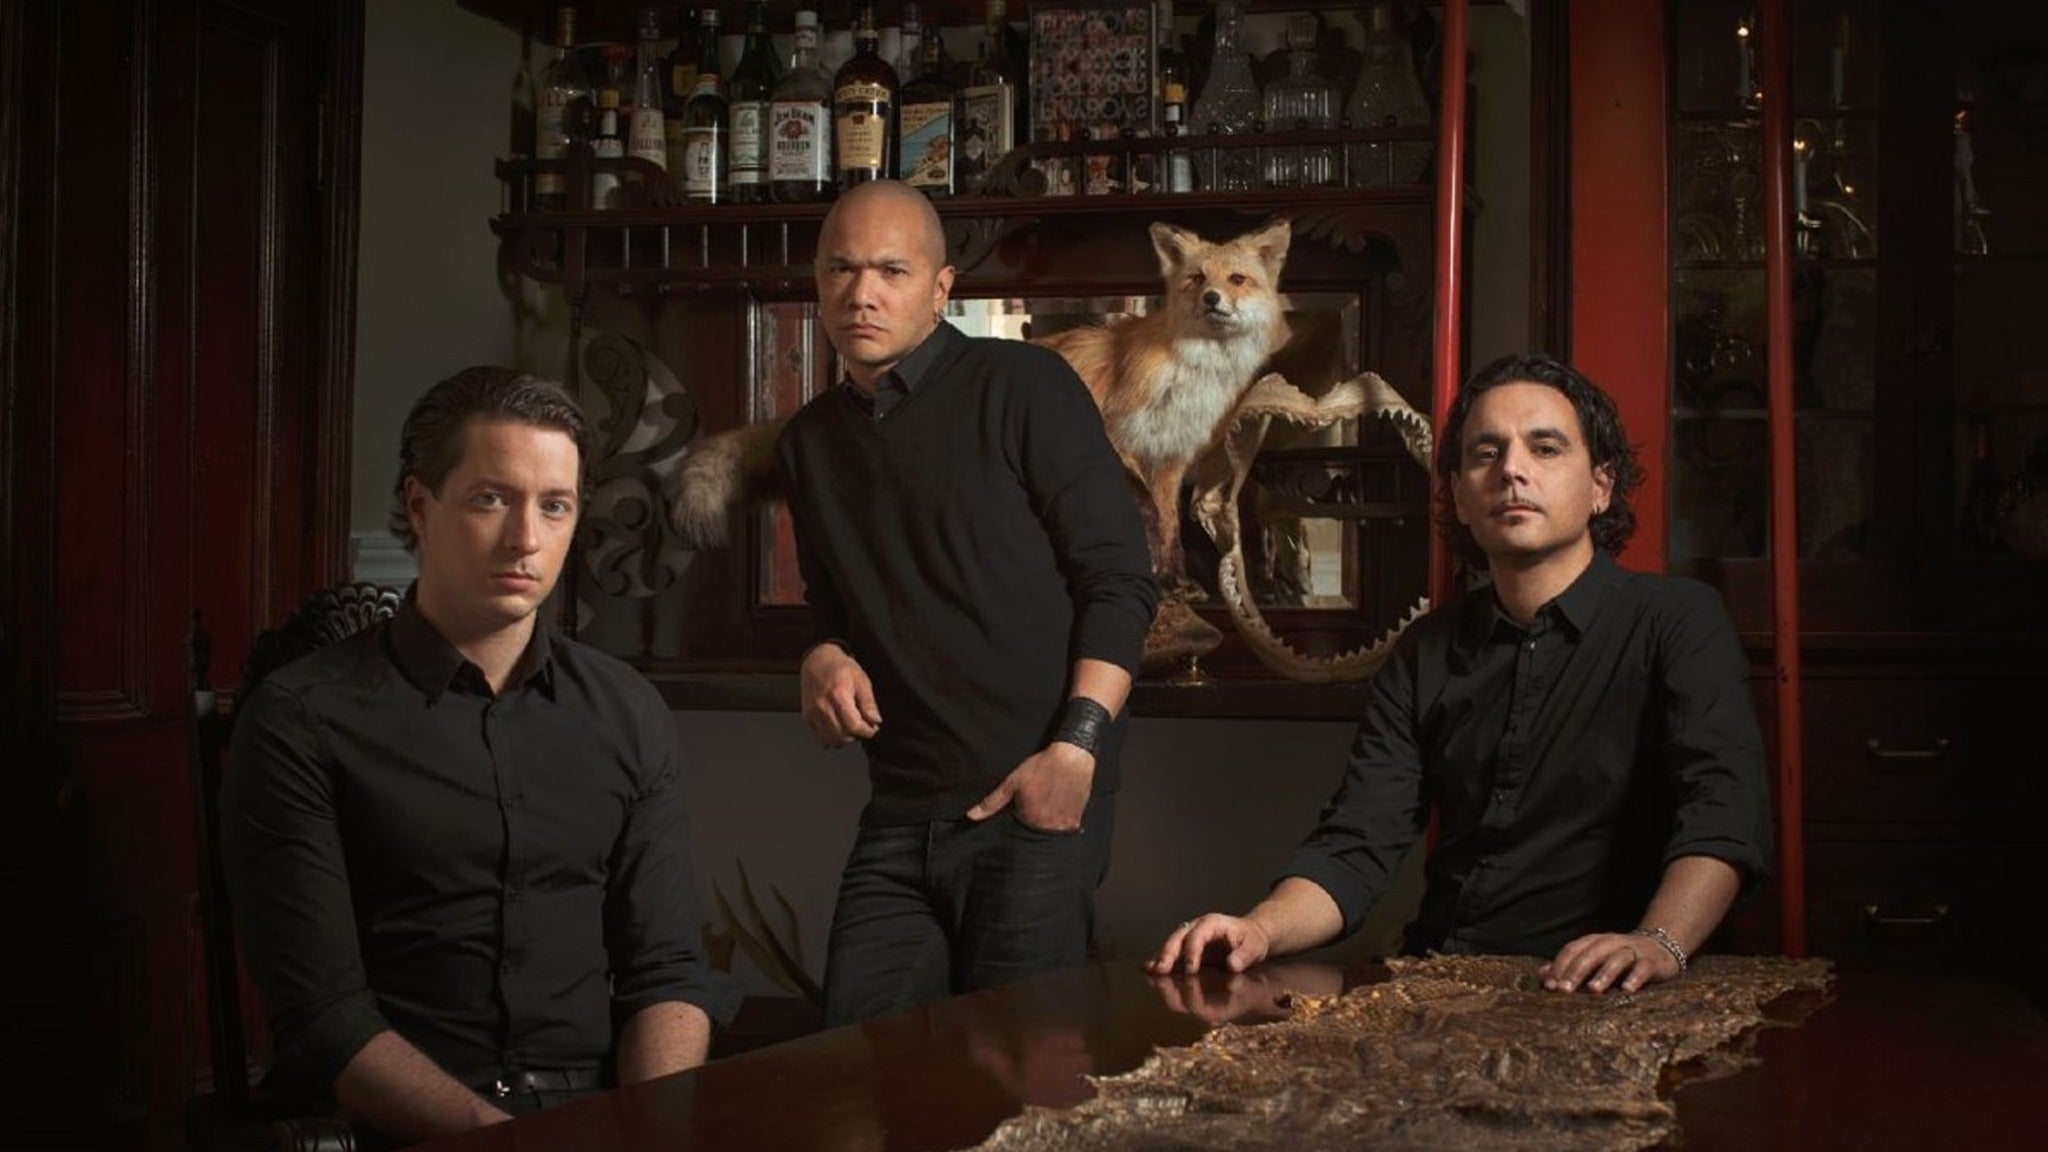 Danko Jones at Alex's Bar